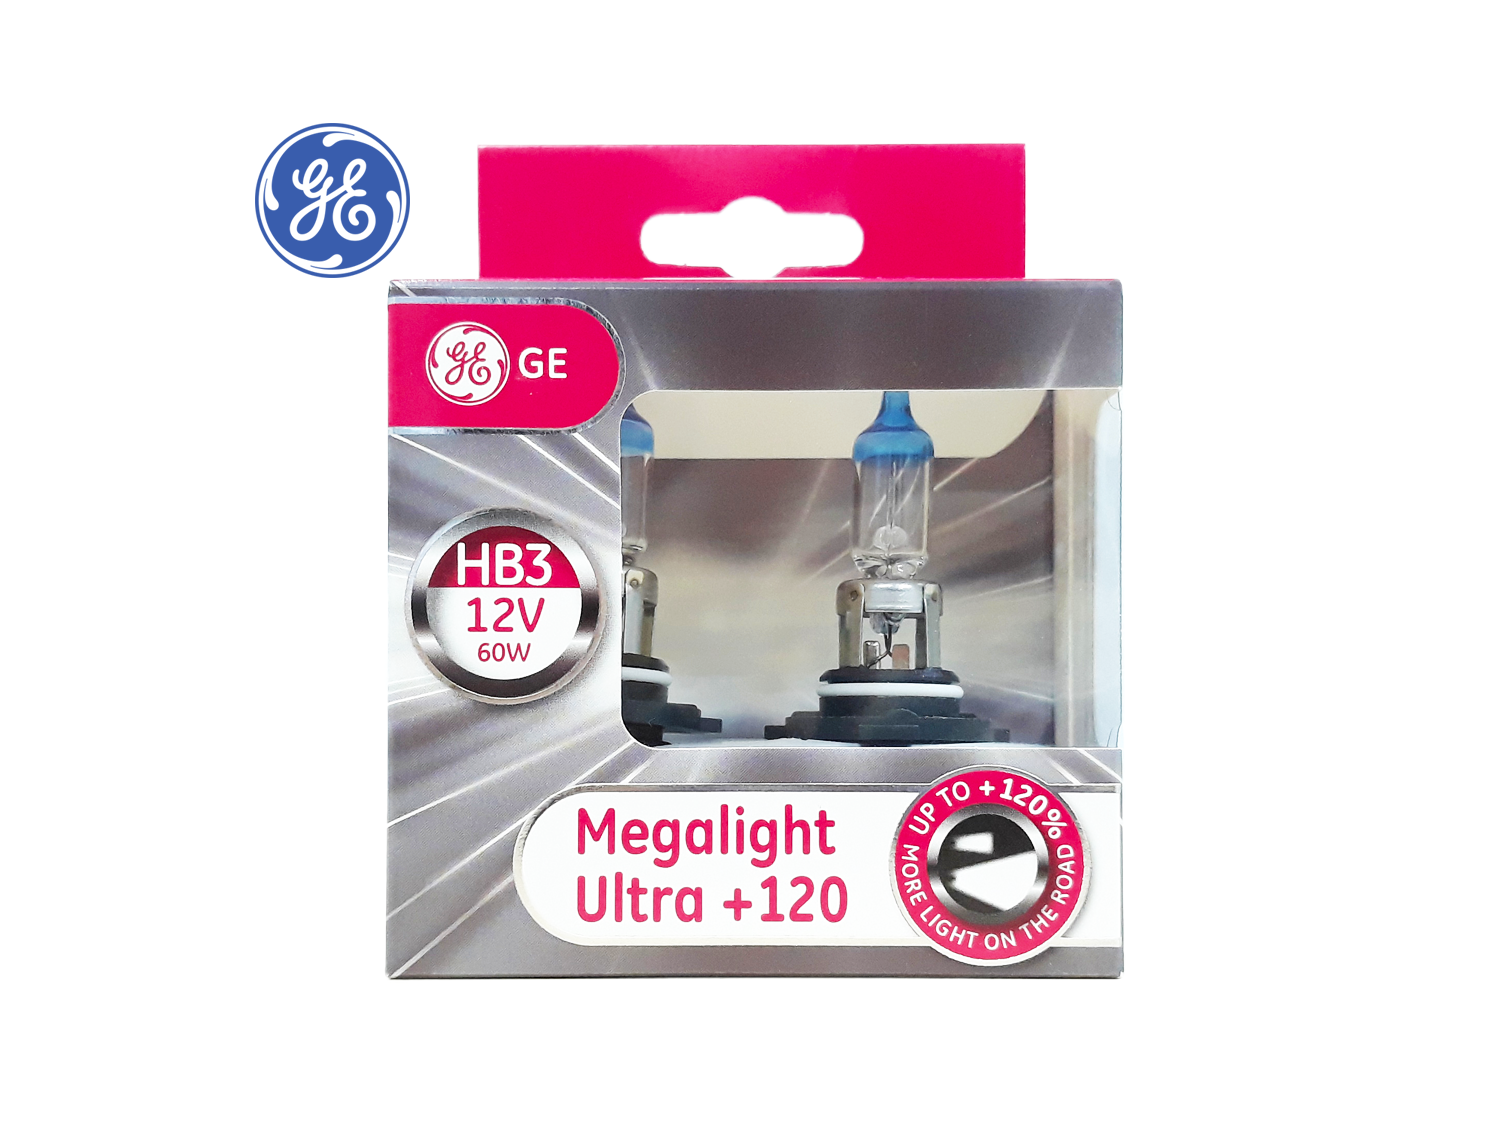 GE HB3 +120% Megalight Ultra Headlight lamps ; SKU: 98436